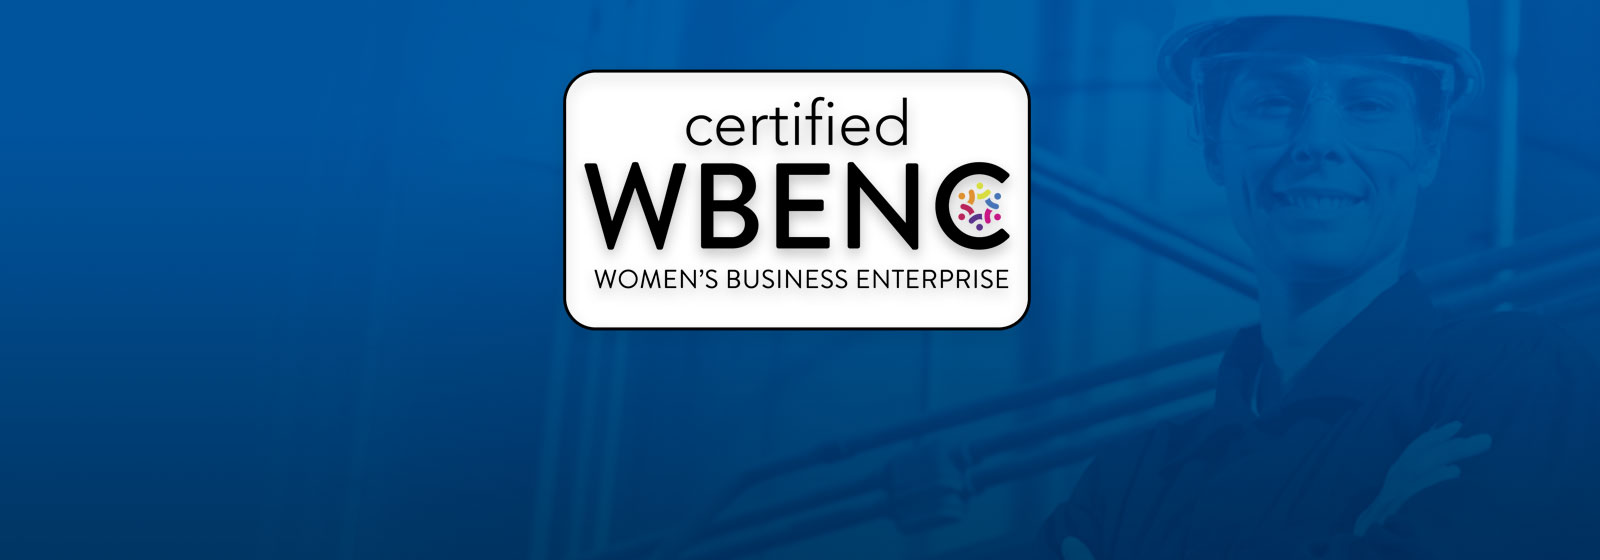 GREENWOOD IS PROUD TO BE A WOMEN-OWNED BUSINESS AS CERTIFIED THROUGH THE WOMEN'S BUSINESS ENTERPRISE NATIONAL COUNCIL (WBENC)